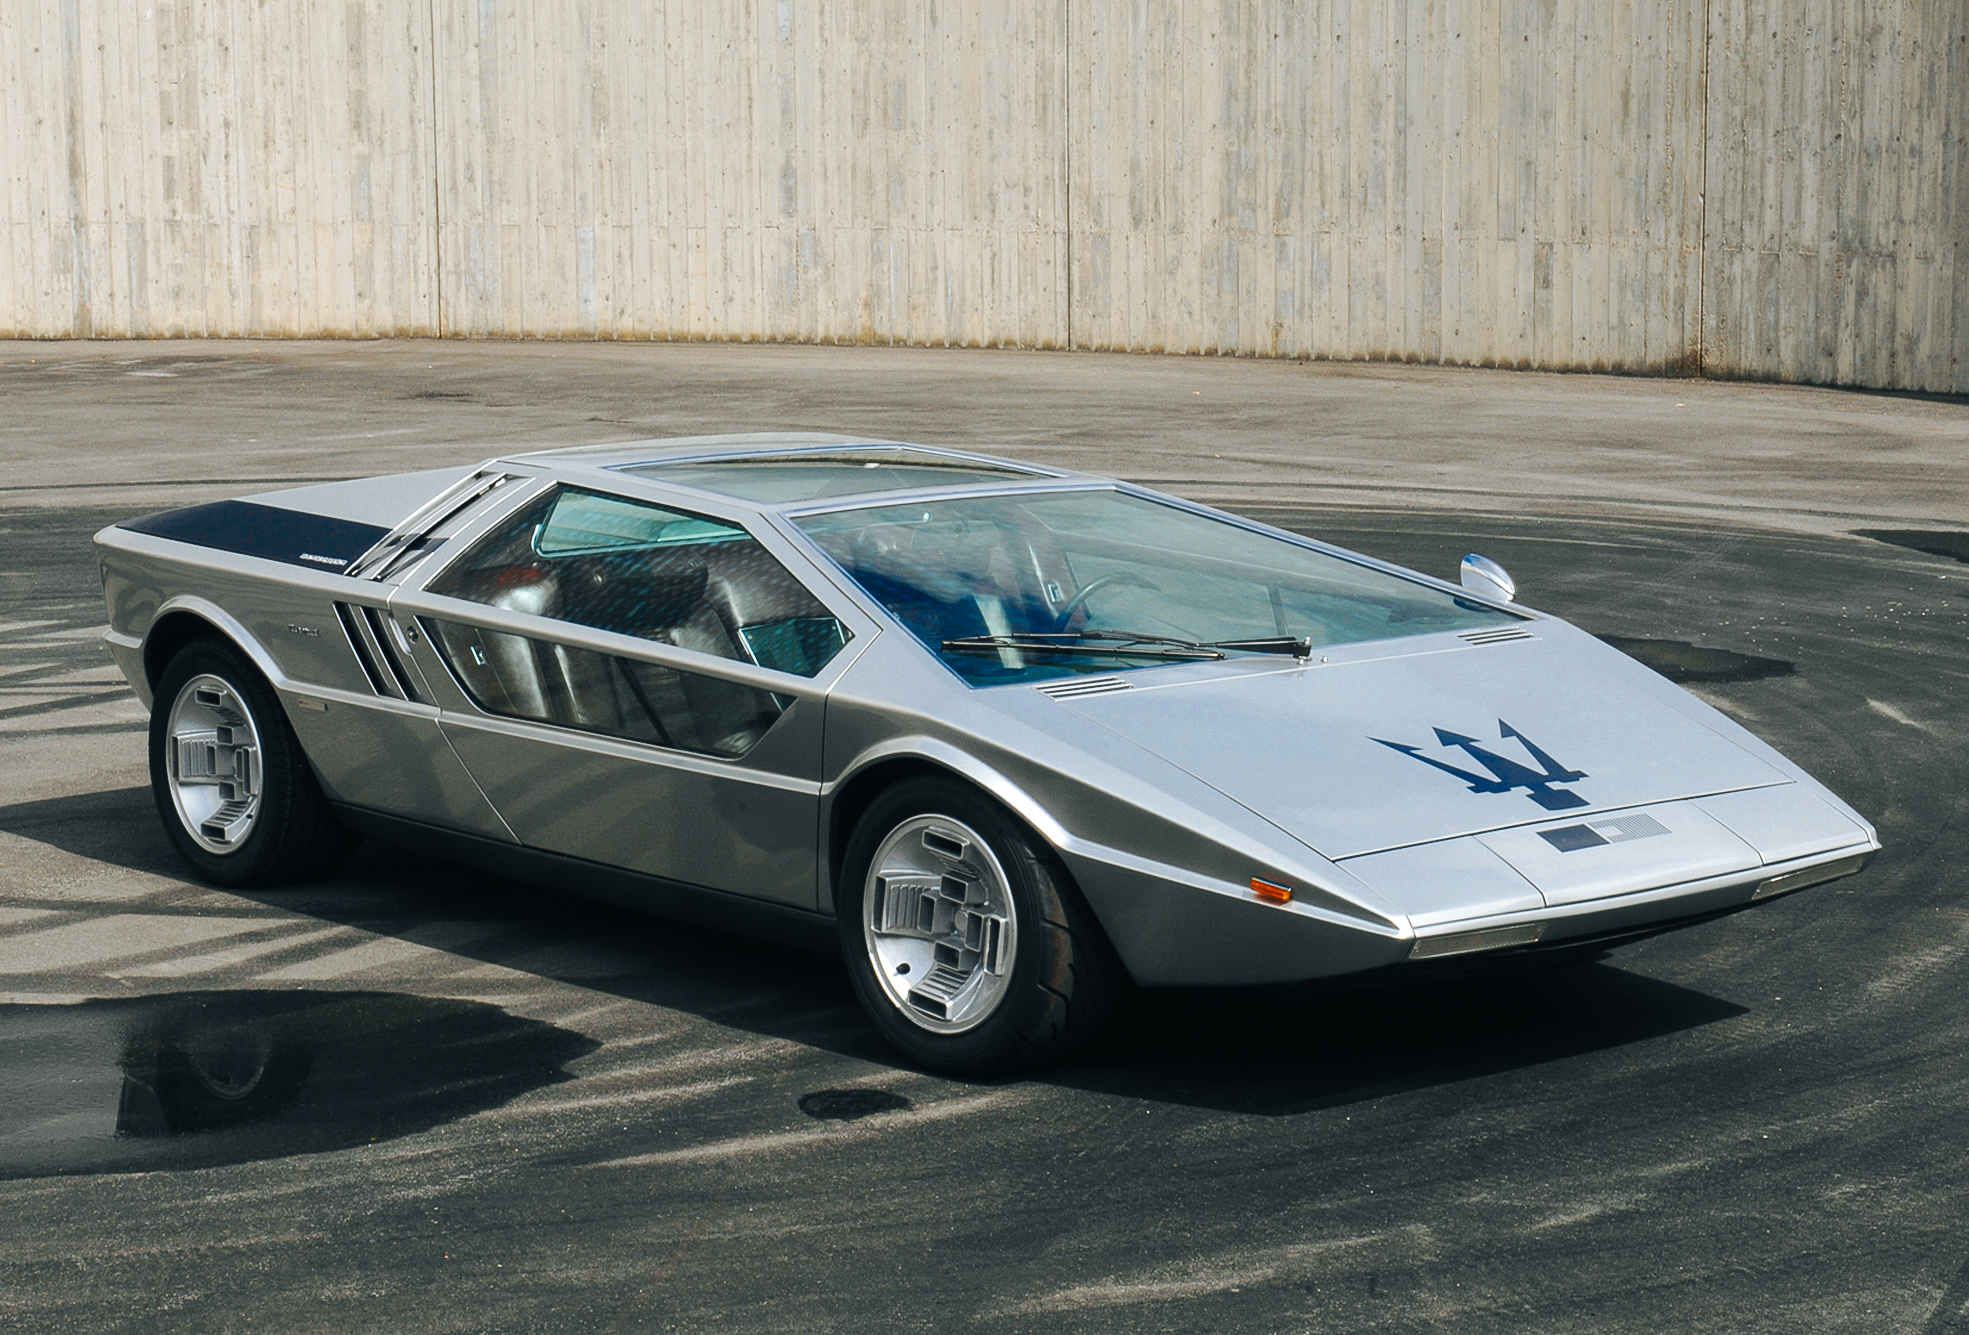 This 70s Maserati Concept Could Sell For 4 Million Maserati Concept Cars Classic Cars